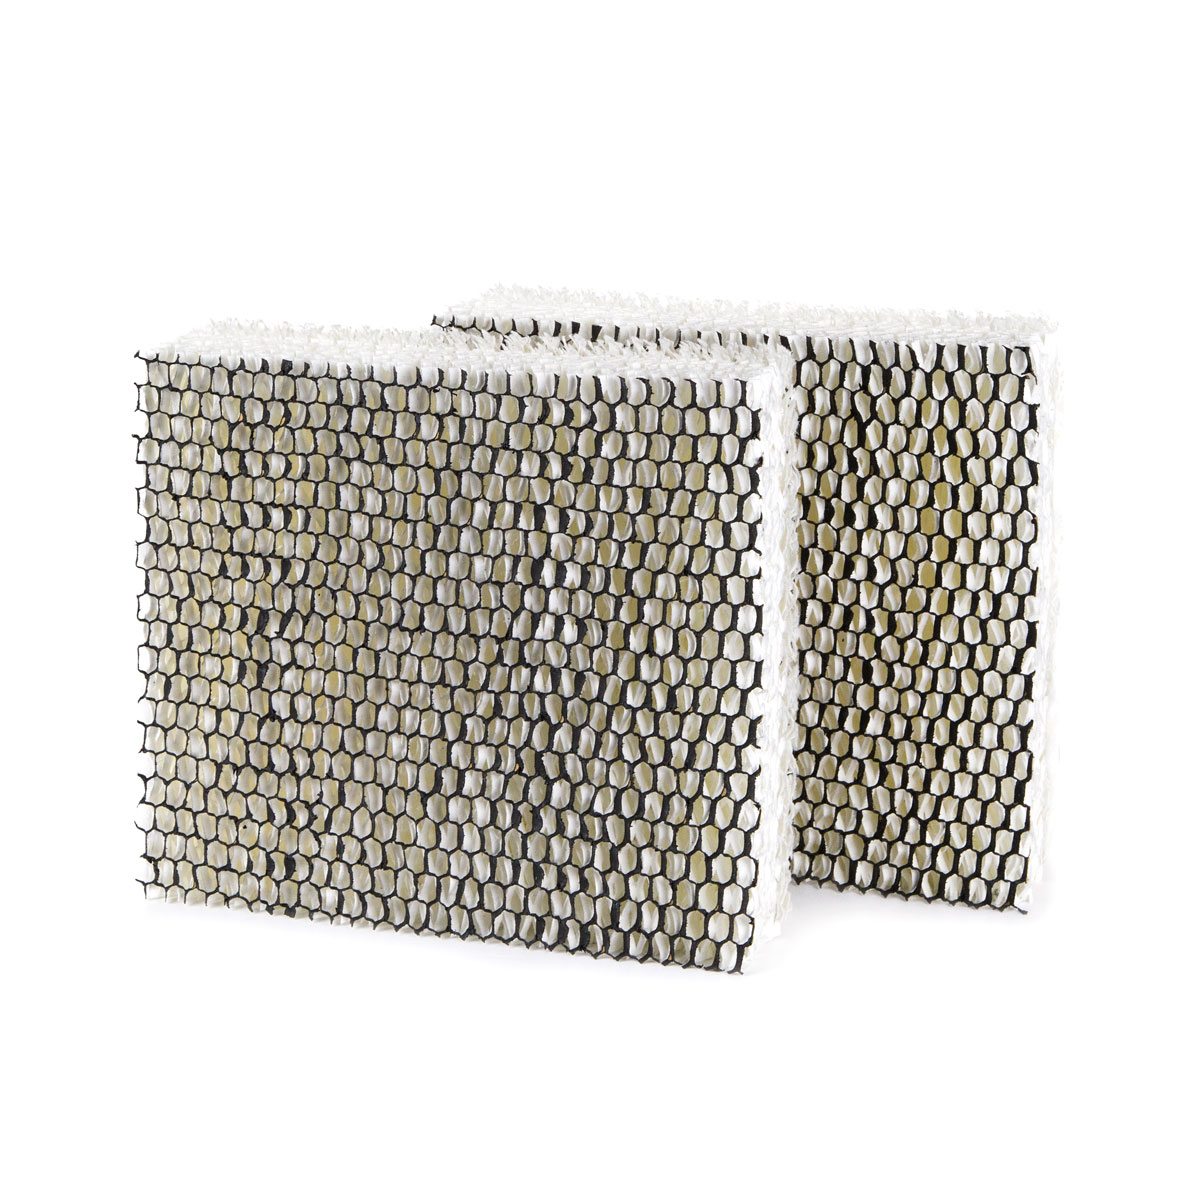 Bionaire® Humidifier Replacement Filters 900 X Bionaire® Canada #7A7051